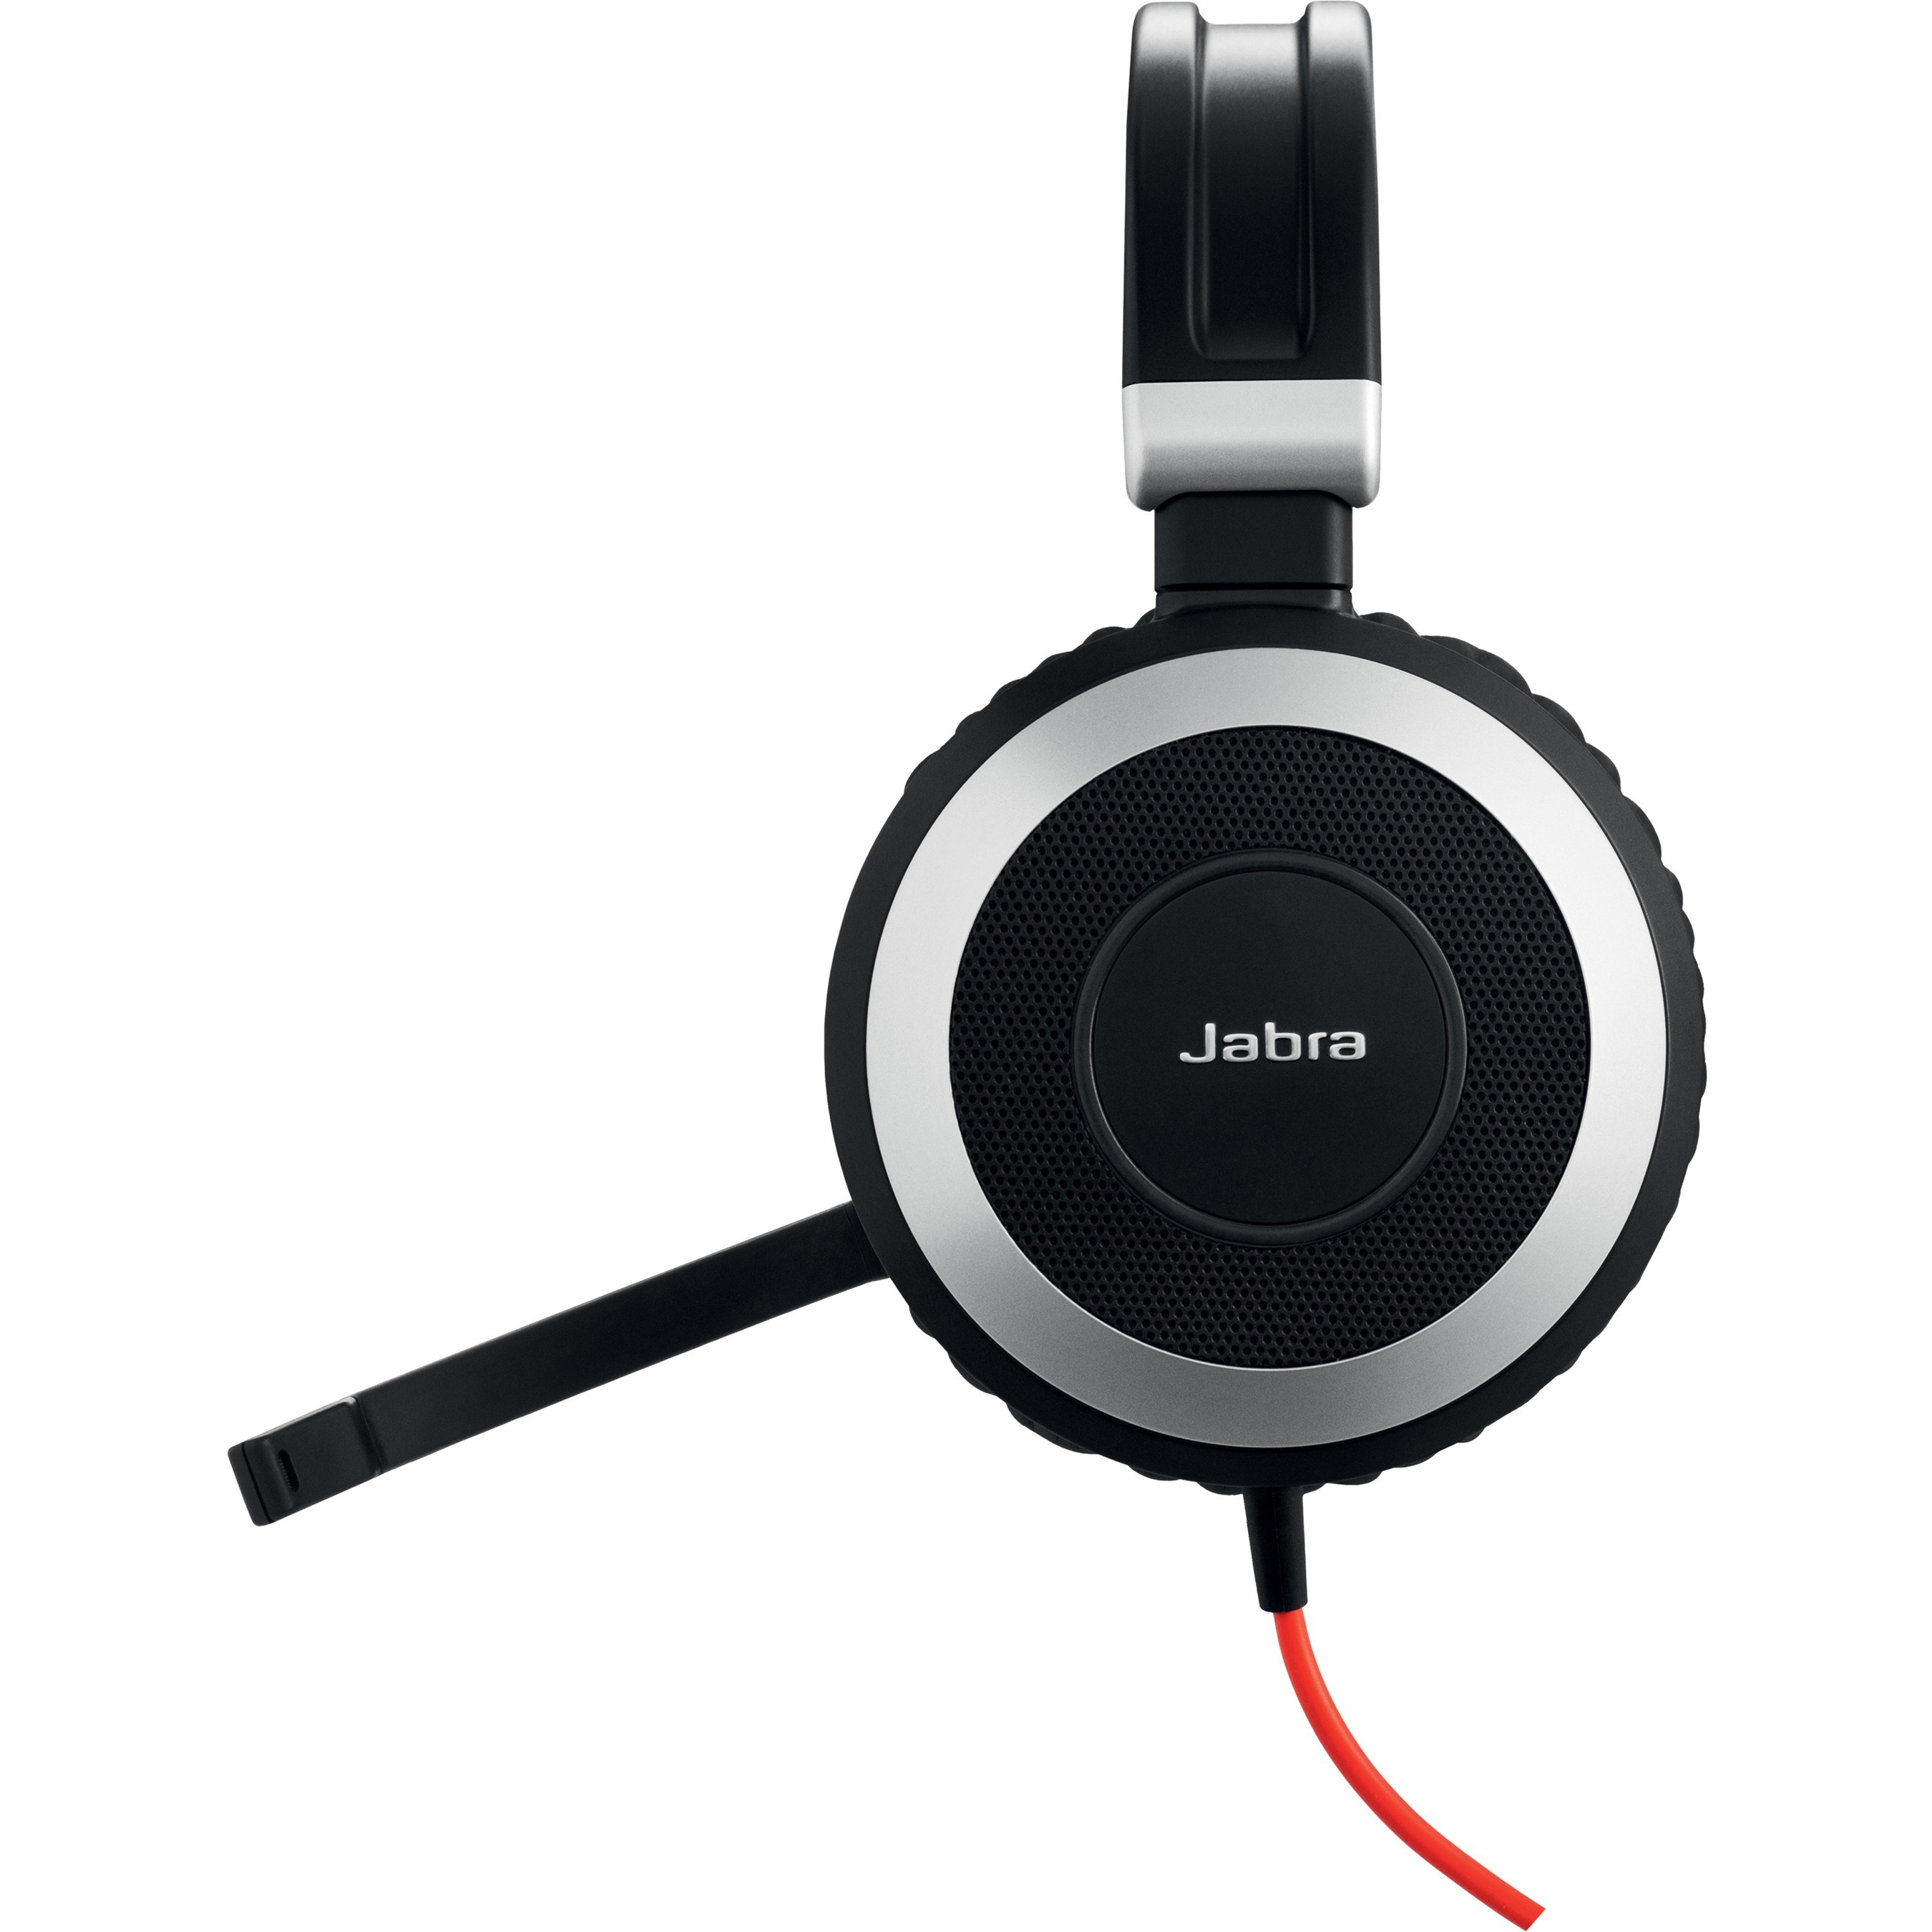 Jabra EVOLVE 80 Wired Stereo Headset - Over-the-head - Circumaural - USB, Mini-phone